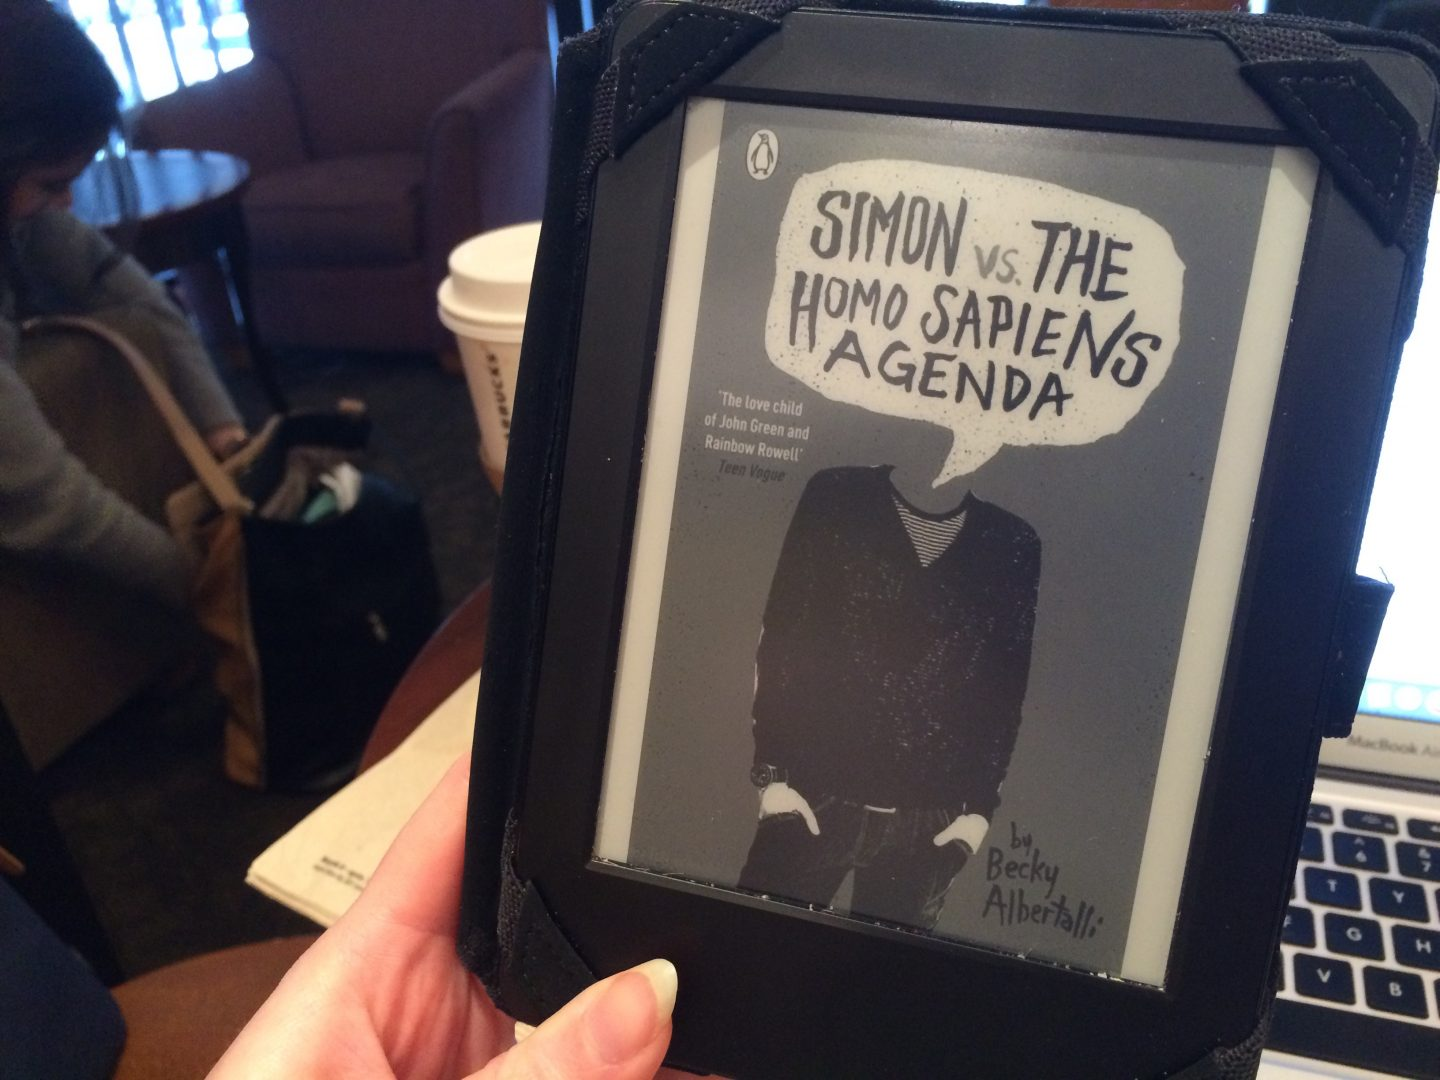 Simon vs. the Homo Sapiens Agenda by Becky Albertalli Book Review